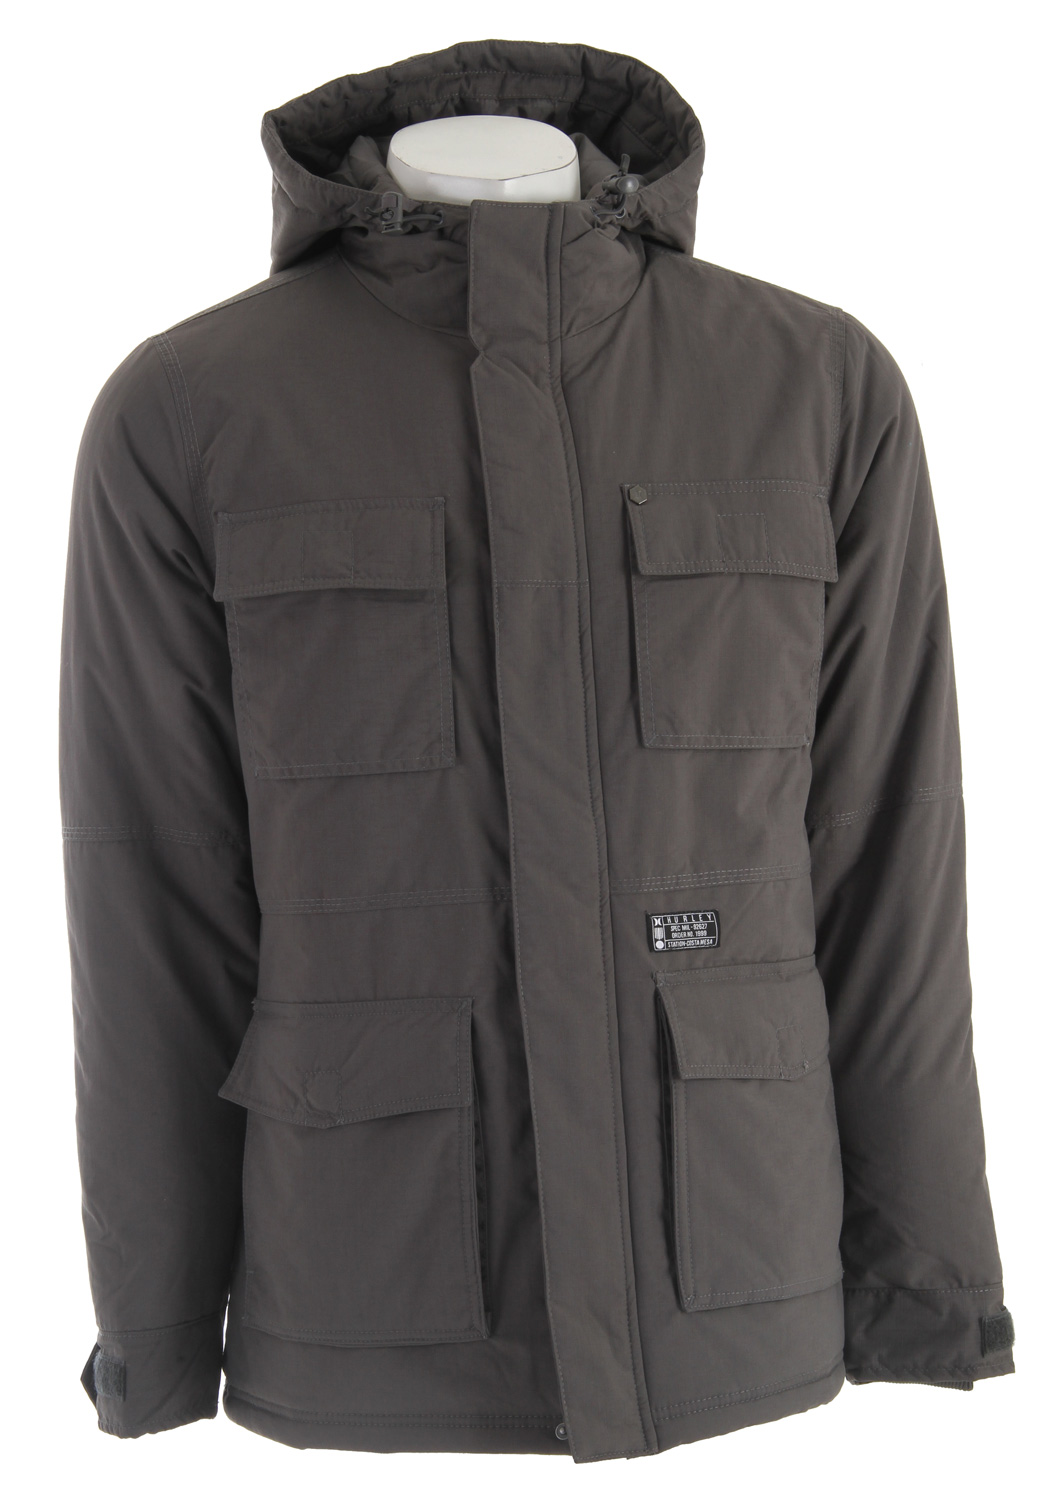 Surf Hurley Focus Jacket Cinder - $82.95